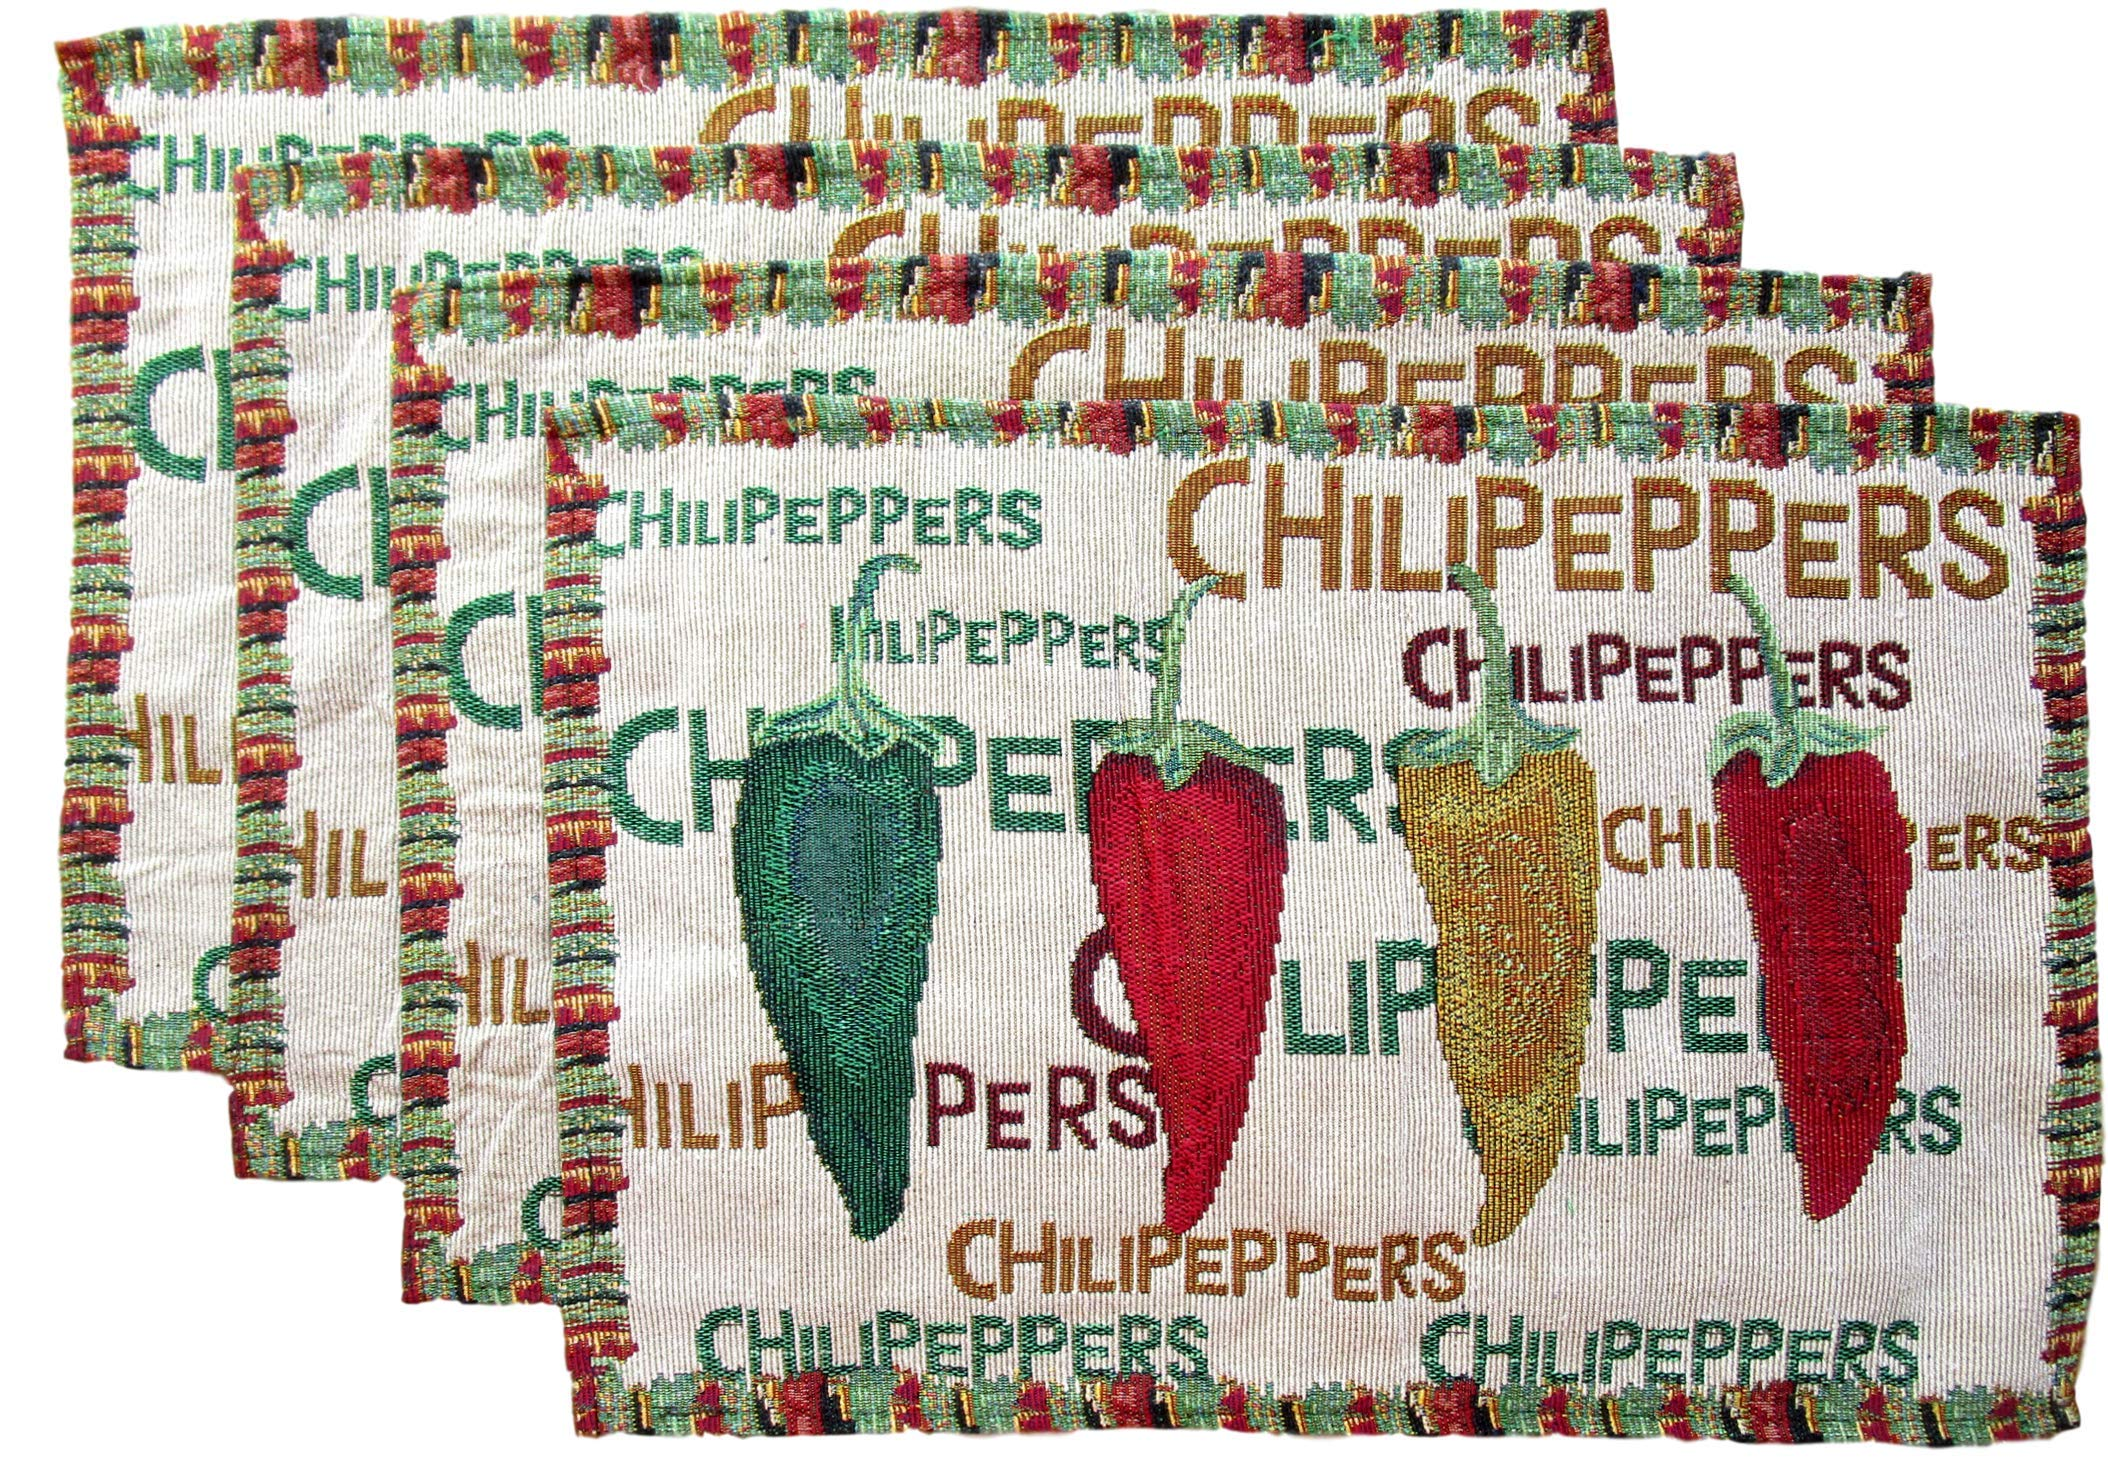 Everyday Woven Tapestry Place Mats - Set of 4 (Red, Green, and Yellow Chili Peppers with Border) by Everyday (Image #1)